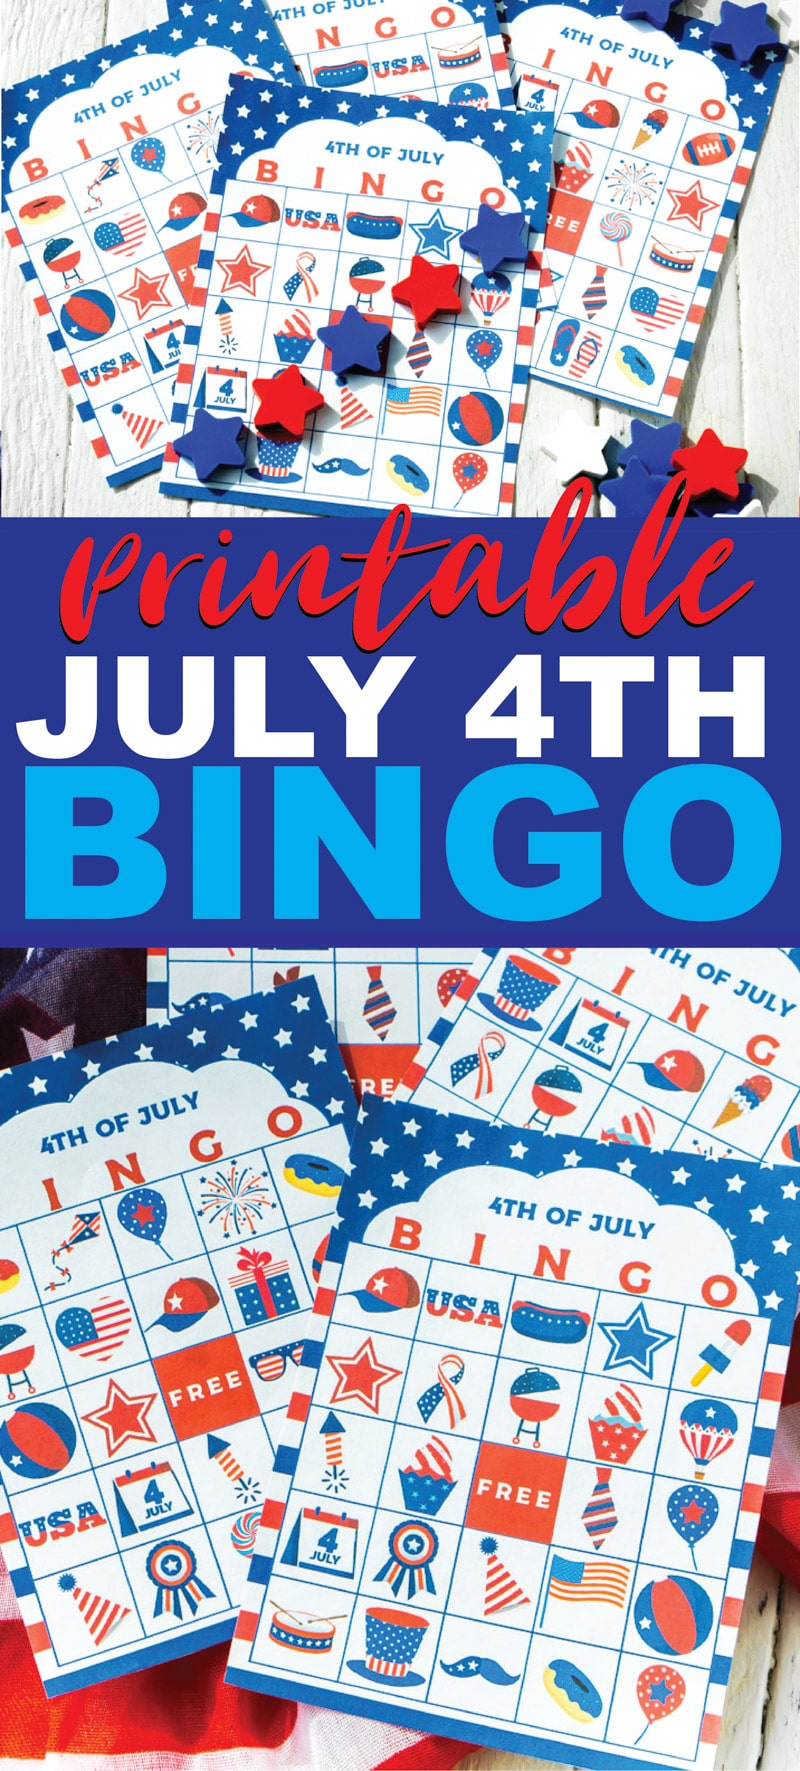 This 4th of July bingo game is perfect for kids, for adults, or for teens to play while waiting for the fireworks! Simple print out the free printable cards, hand out the markers, and start playing! One of the best activities for both indoor or outdoor parties! via @playpartyplan